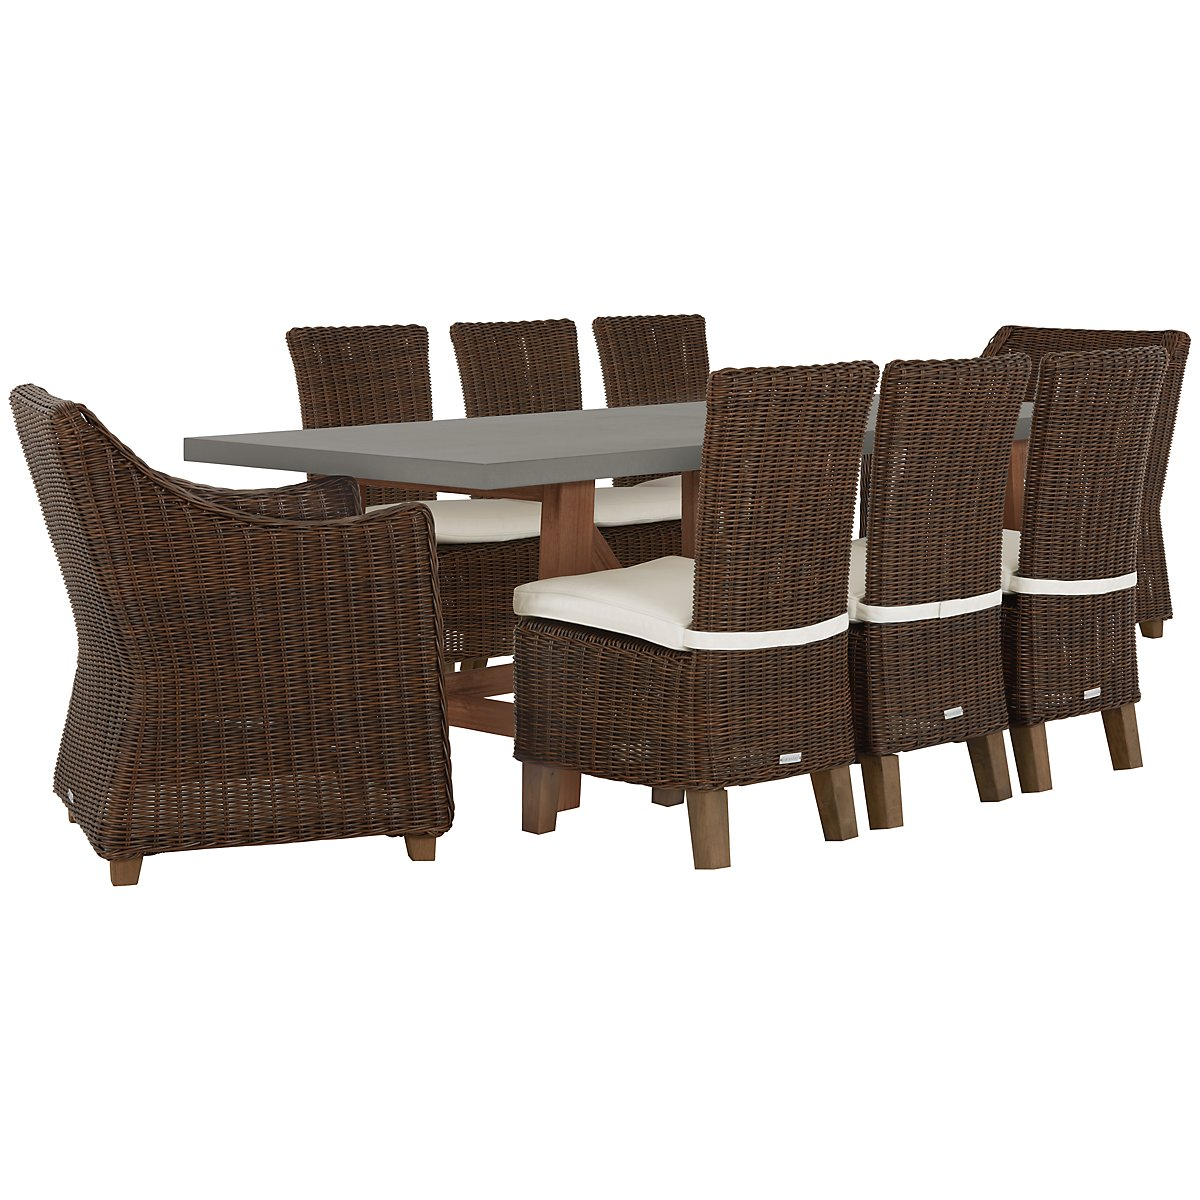 Canyon Concrete Dk Brown Rectangular Table & 4 Chairs